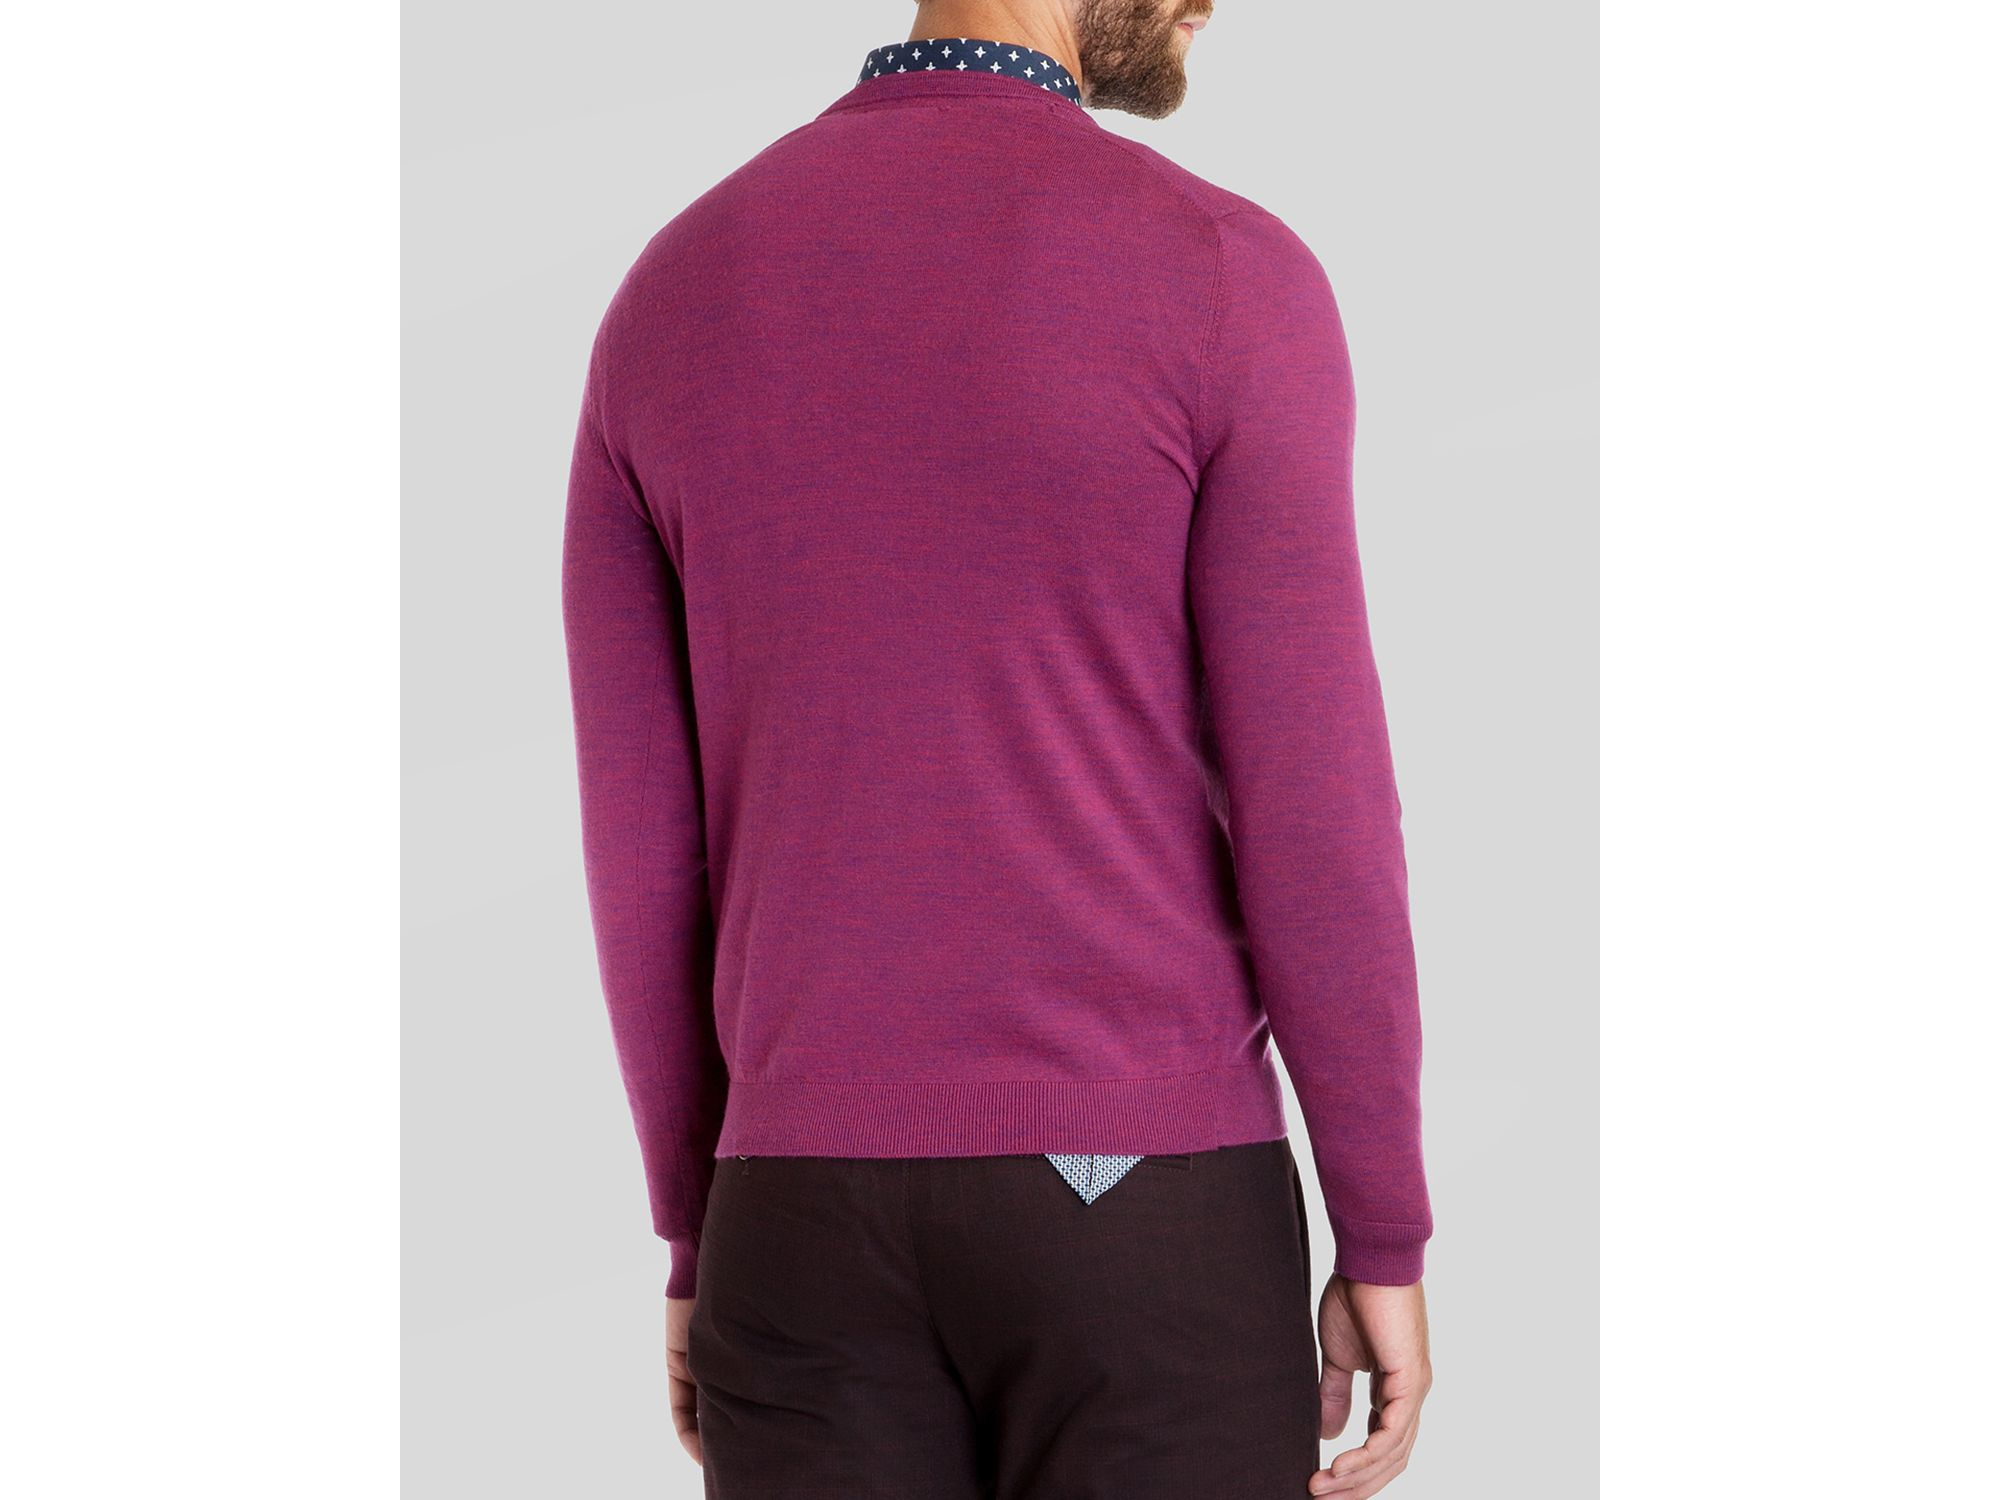 67711d7d48b45 Lyst - Ted Baker Babel Merino Wool V-neck Sweater in Purple for Men